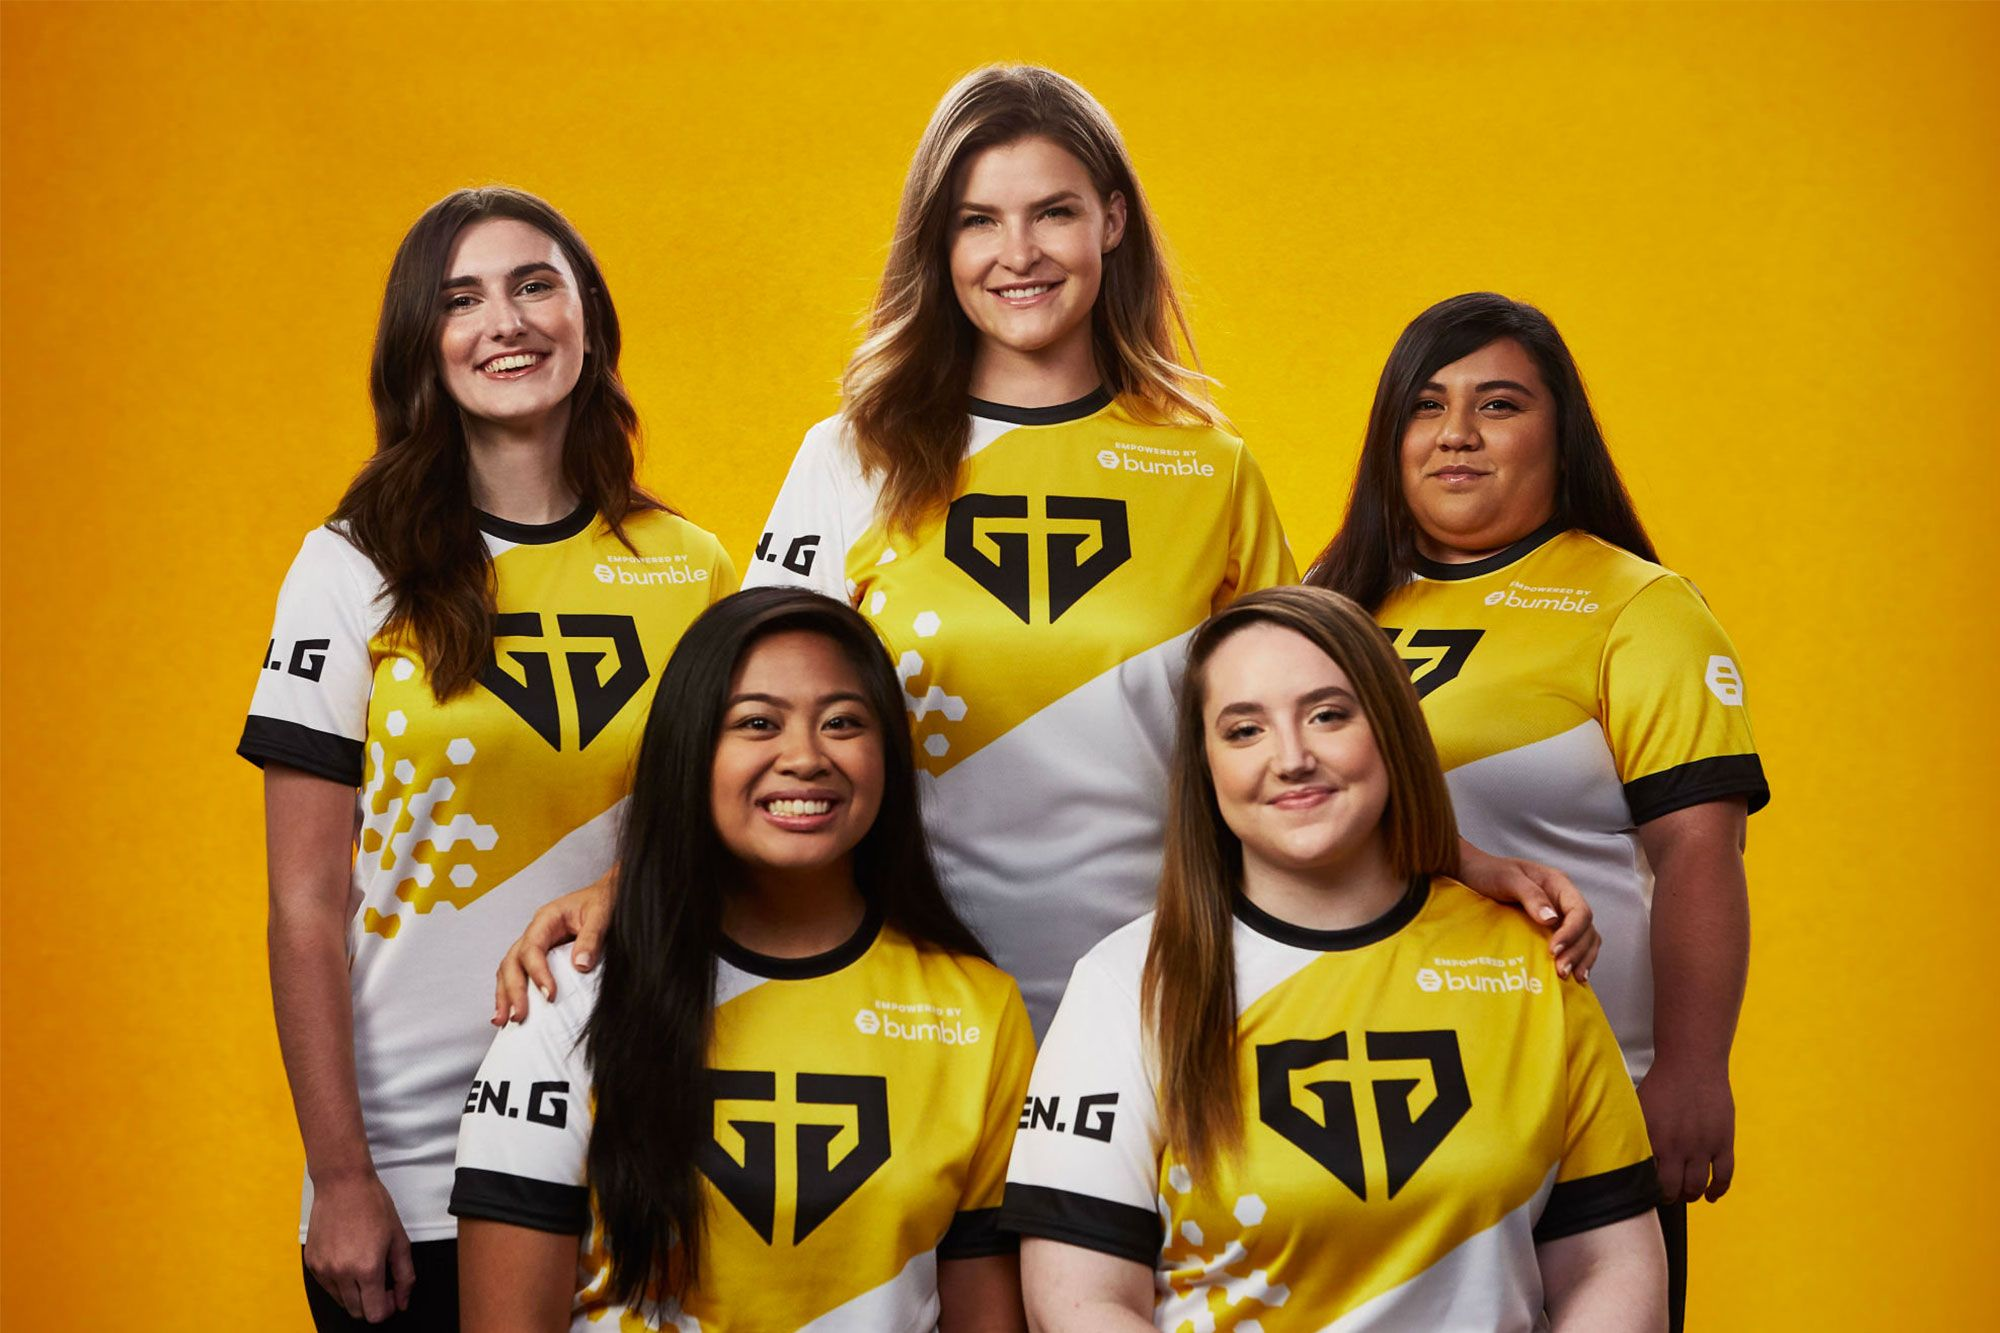 Bumble and Gen. G Form First Pro All-Women 'Fortnite' Team